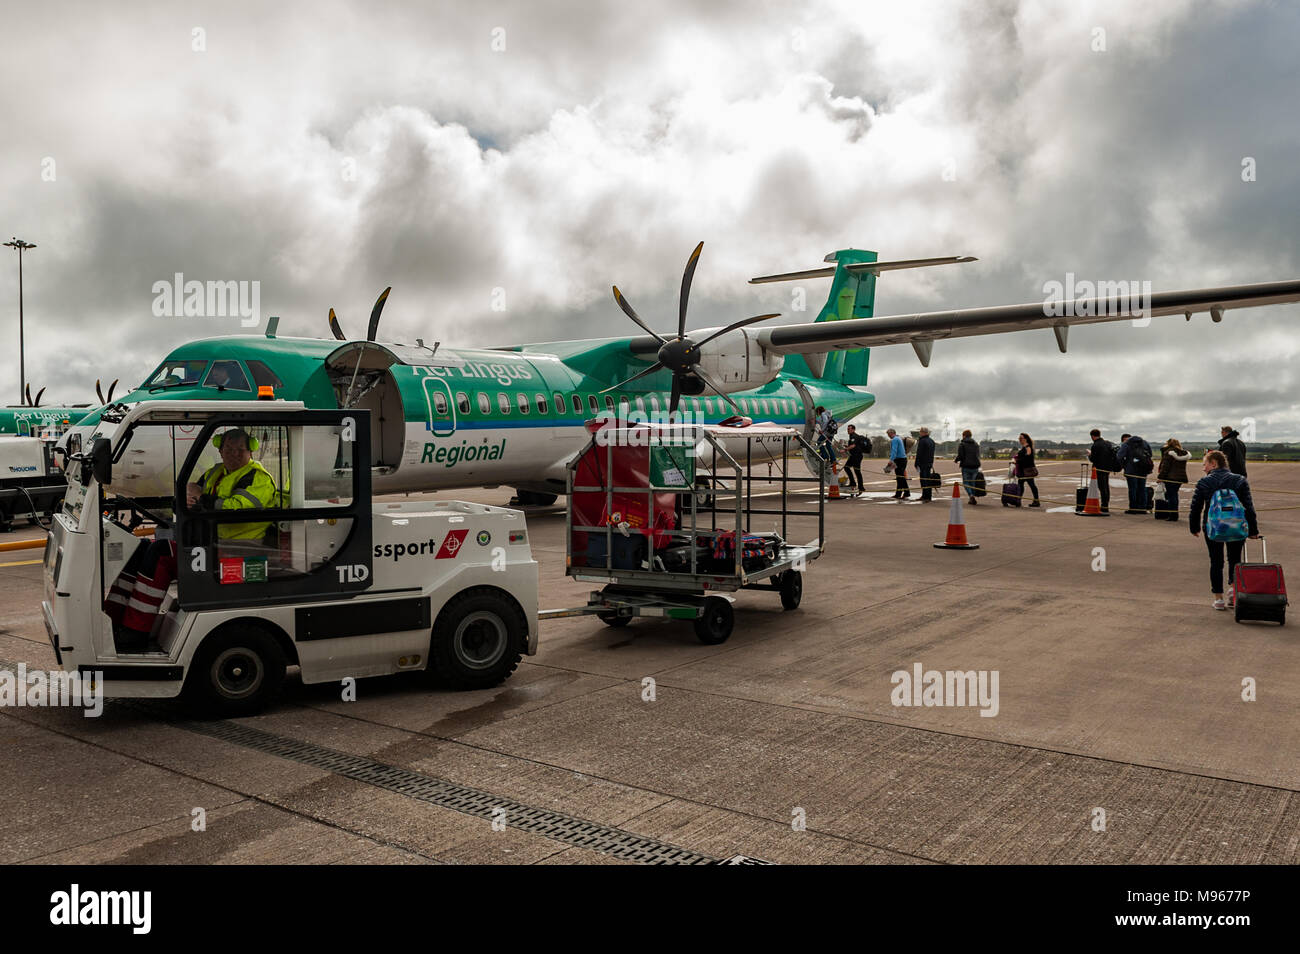 Passengers board an ATR 72-600 aircraft from Cork to Birmingham as a baggage handler drives a cart with baggage to be loaded into the hold. - Stock Image